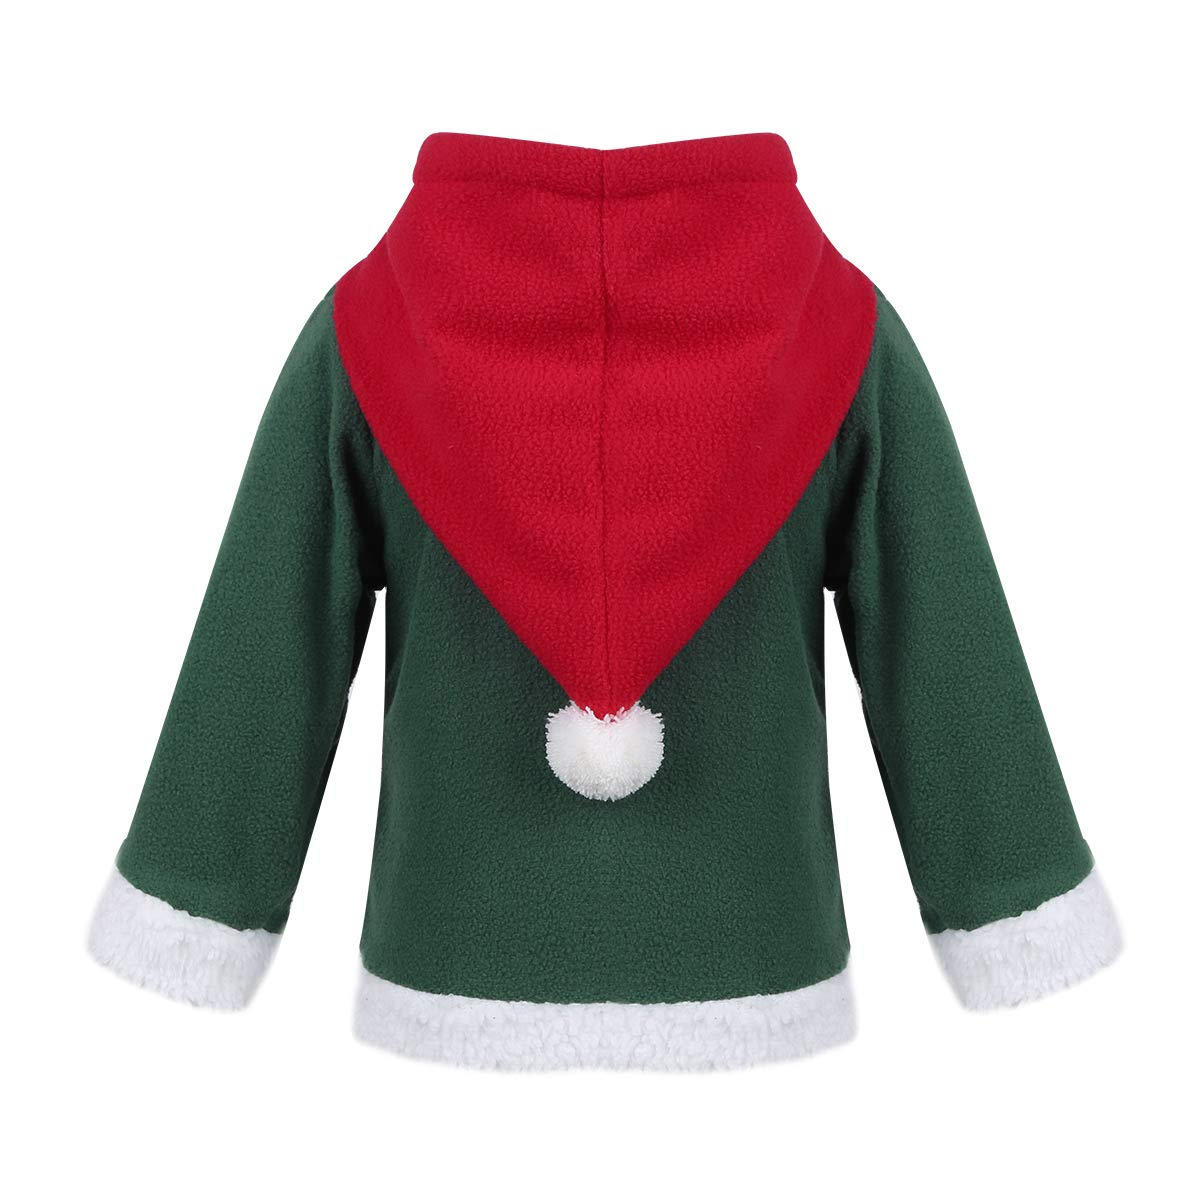 Amazon.com: dPois Baby Boys Girls Christmas Santa Claus Elf Fancy Hooded Sweatshirt Long Sleeve Winter Jacket Coat: Clothing